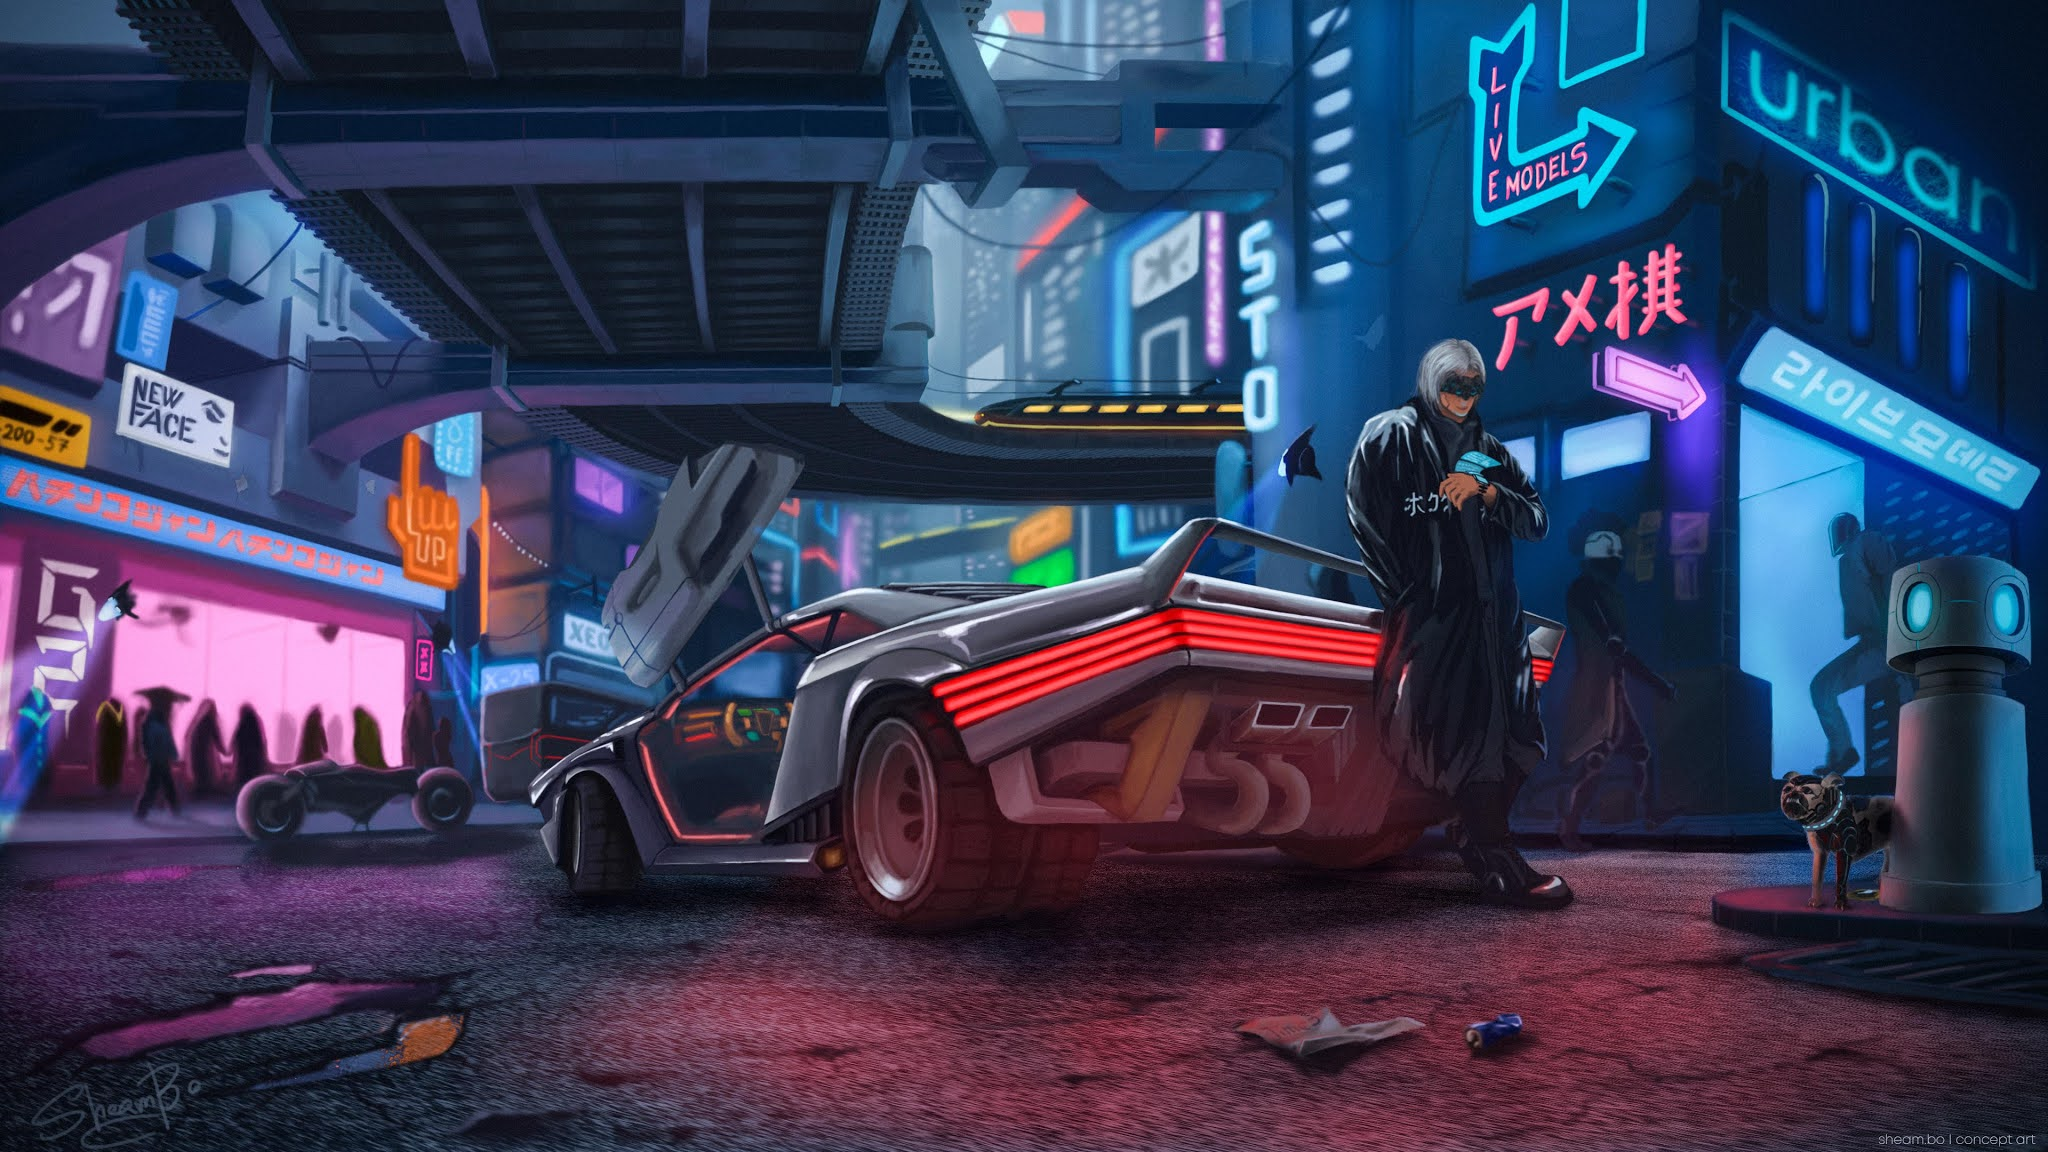 CD Projekt RED Reveals Changes Coming To Cyberpunk 2077 With Update 1.2